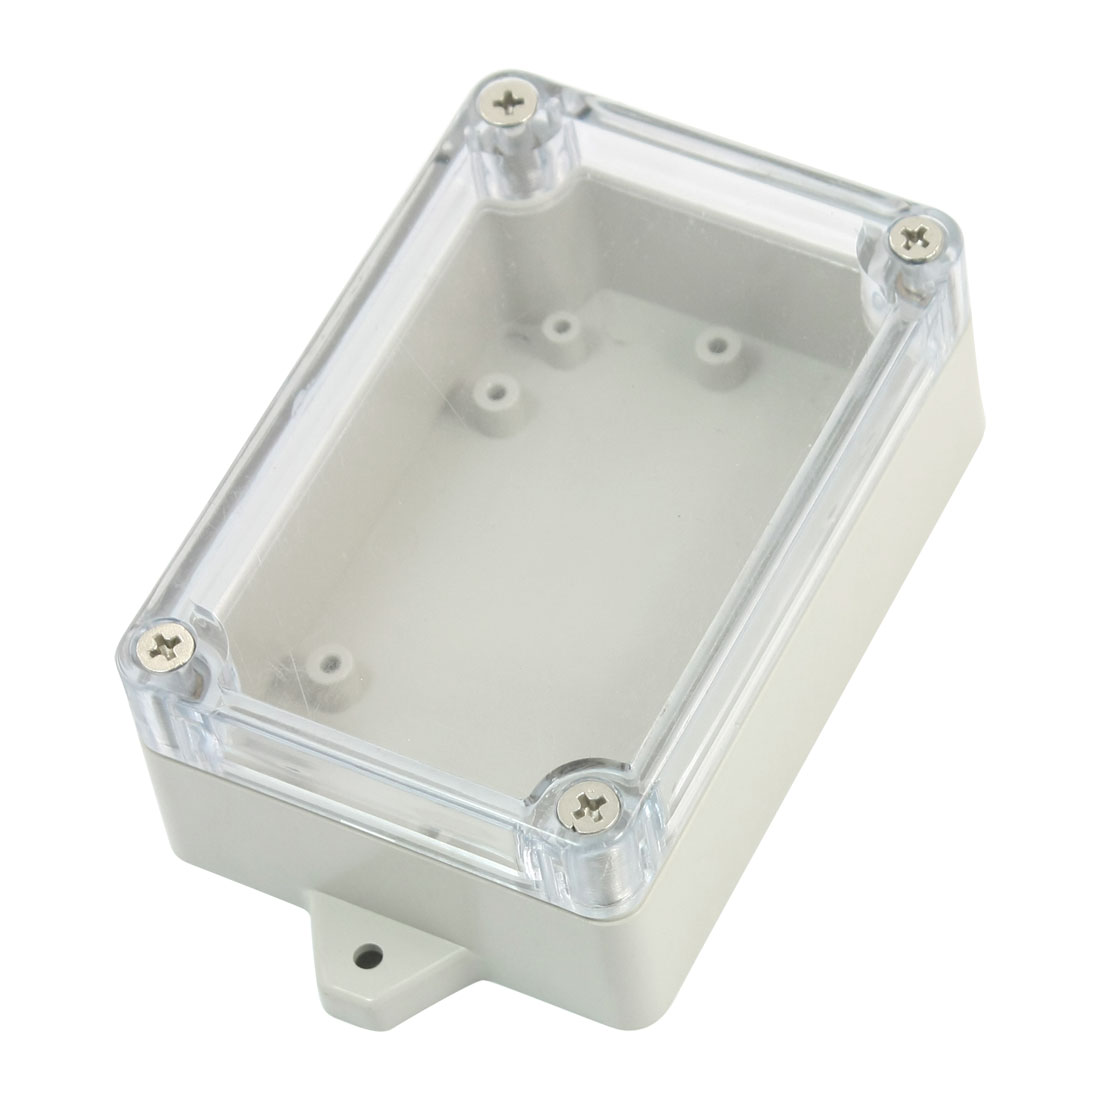 Surface Mount Rectangle Waterproof Sealed Power Protector DIY Electric Junction Box 100mm x 70mm x 40mm w Clear Cover